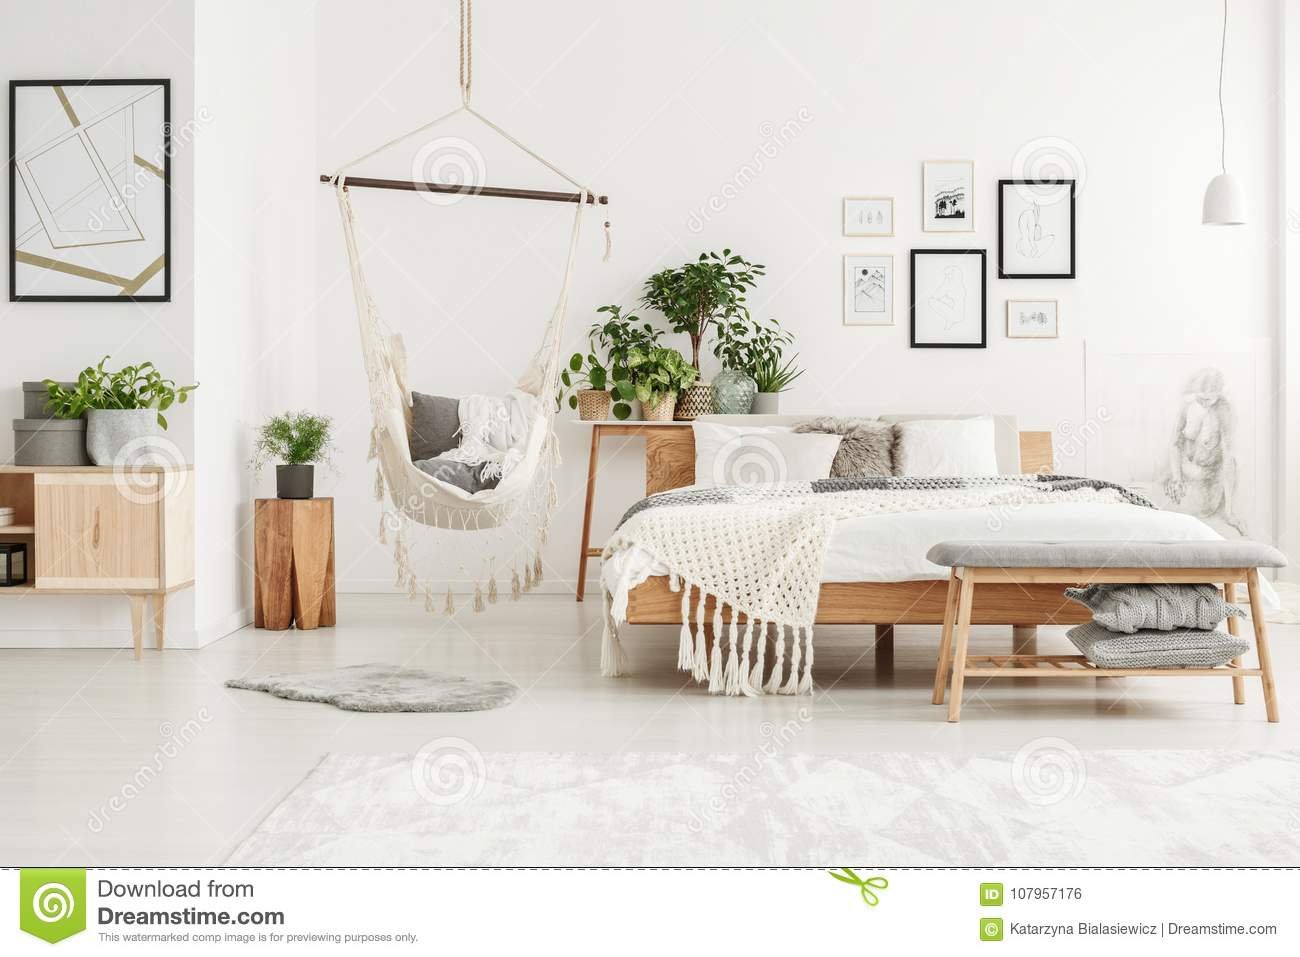 White And Beige Bedroom Interior Stock Photo - Image of chair, flat ...